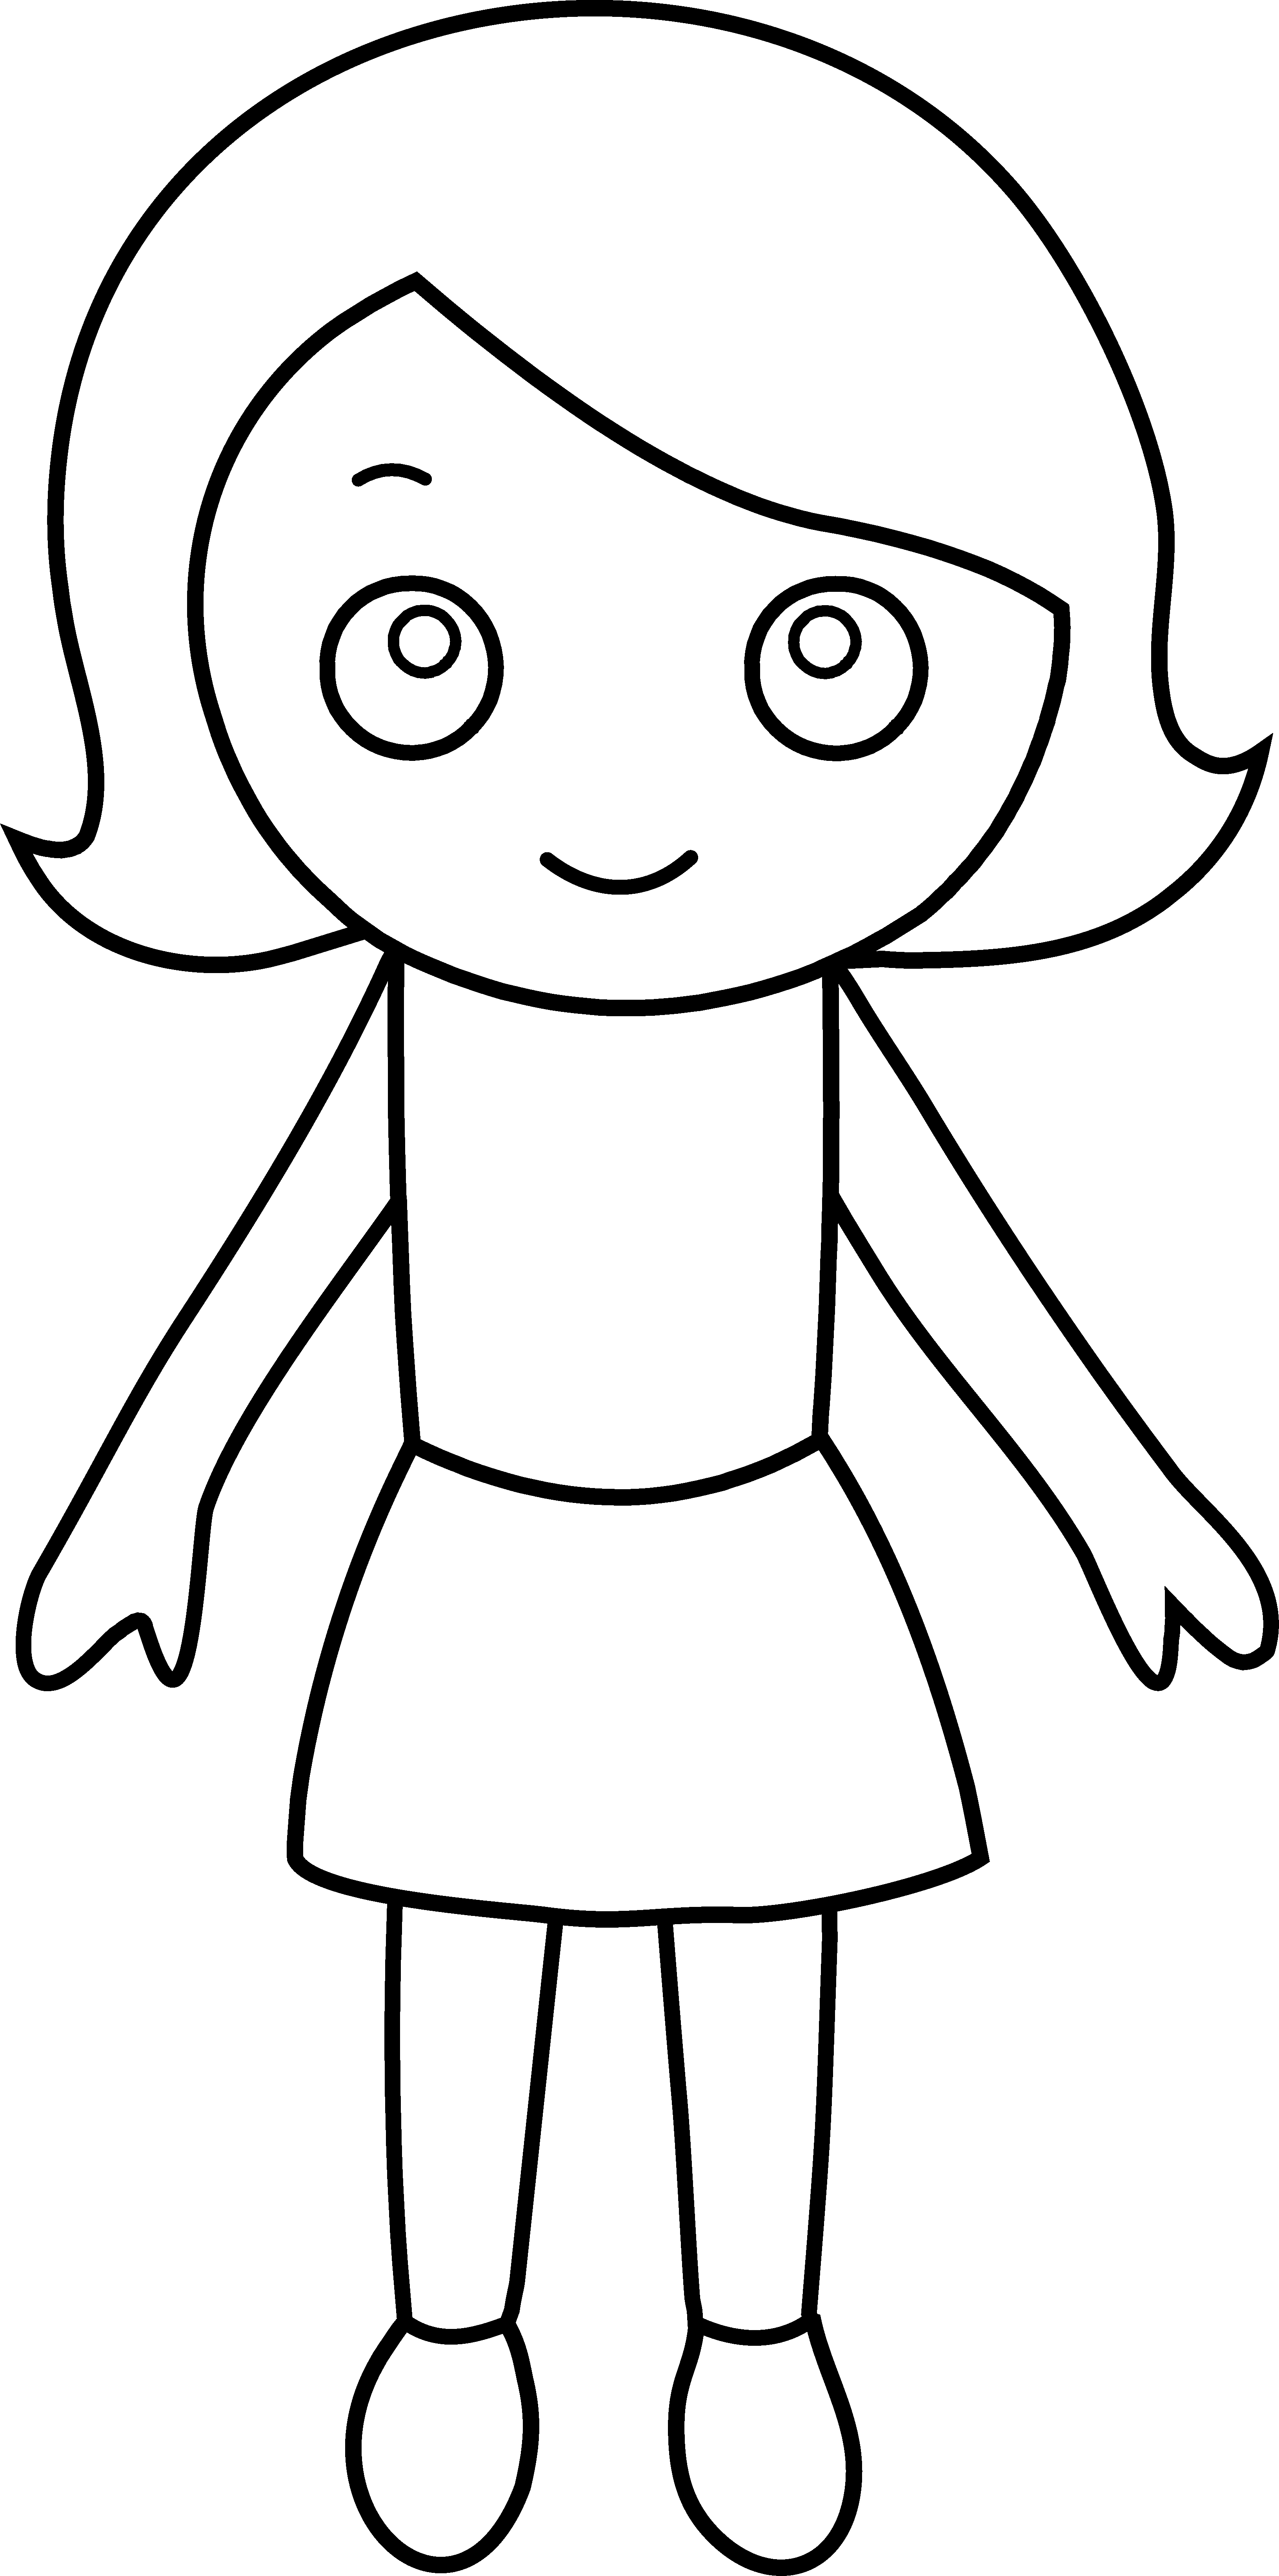 coloring picture of girl detailed coloring pages for girls at getcoloringscom of girl coloring picture